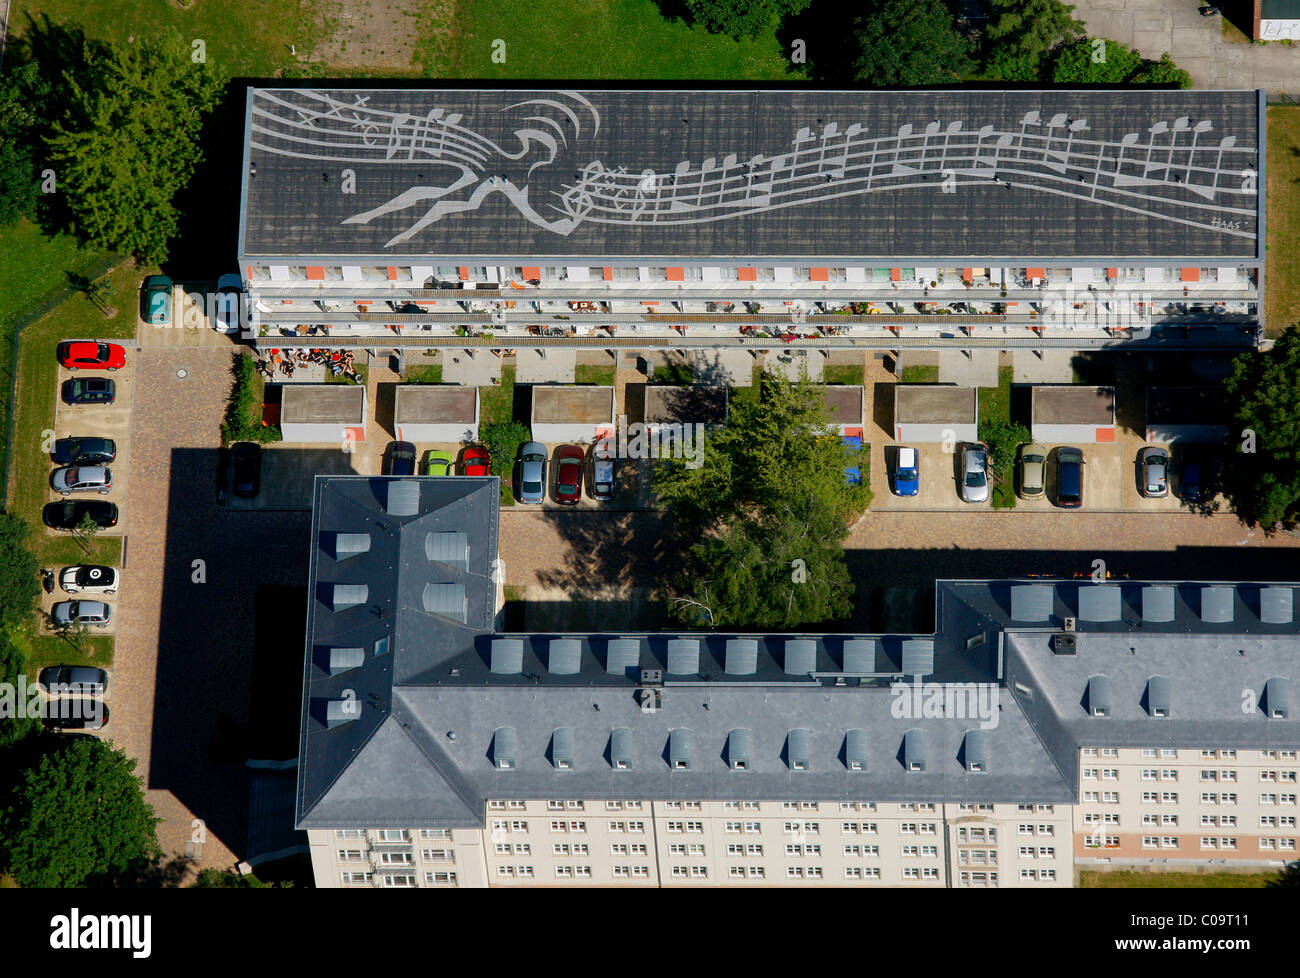 Aerial view, flat roof, notes on the roof, Gutzkowstrasse, Dresden, Saxony, Germany, Europe - Stock Image